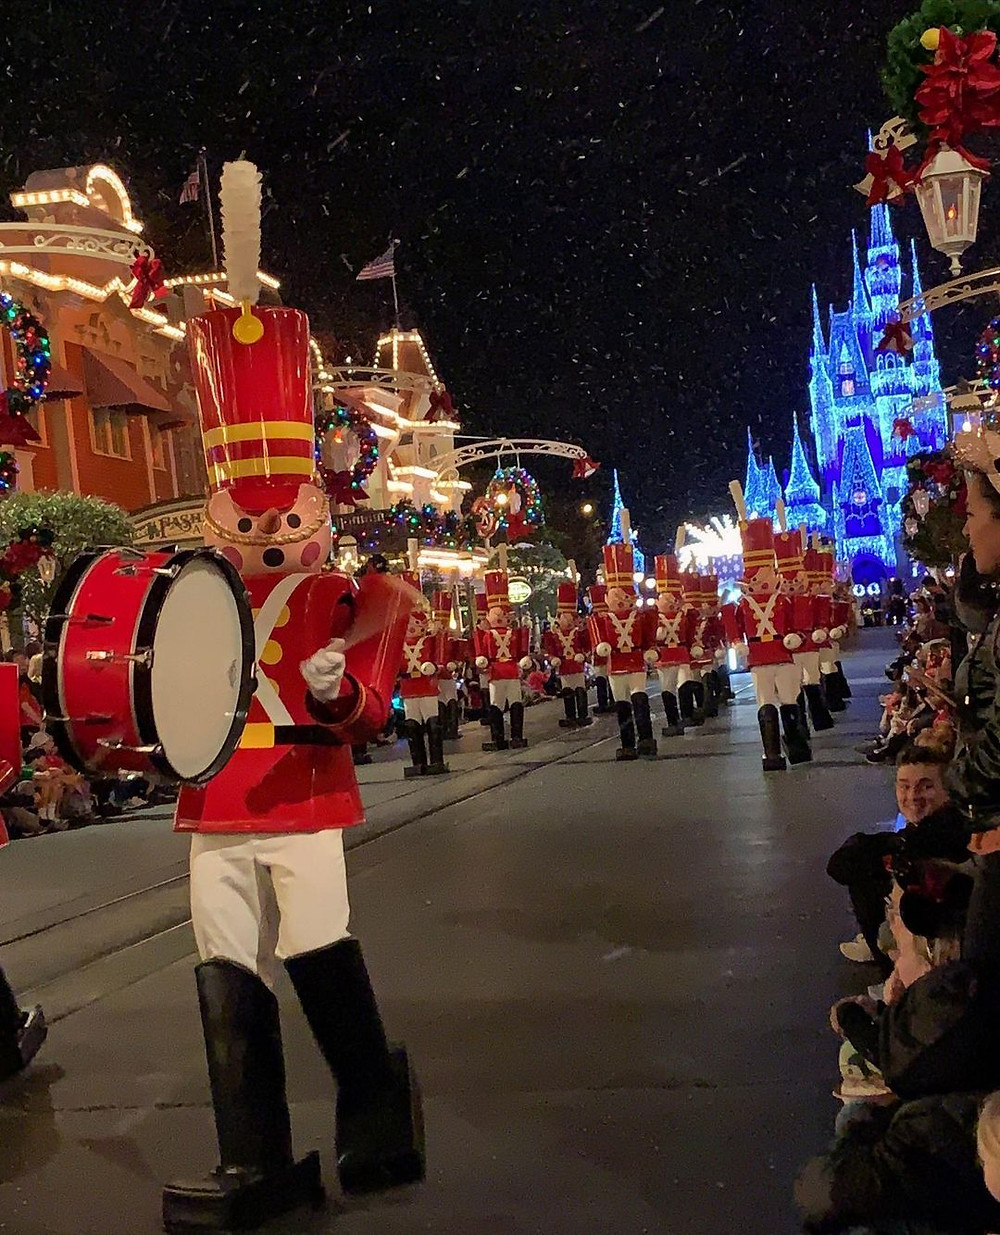 toy soldiers march down main street in the Walt Disney World Holiday Christmas parade